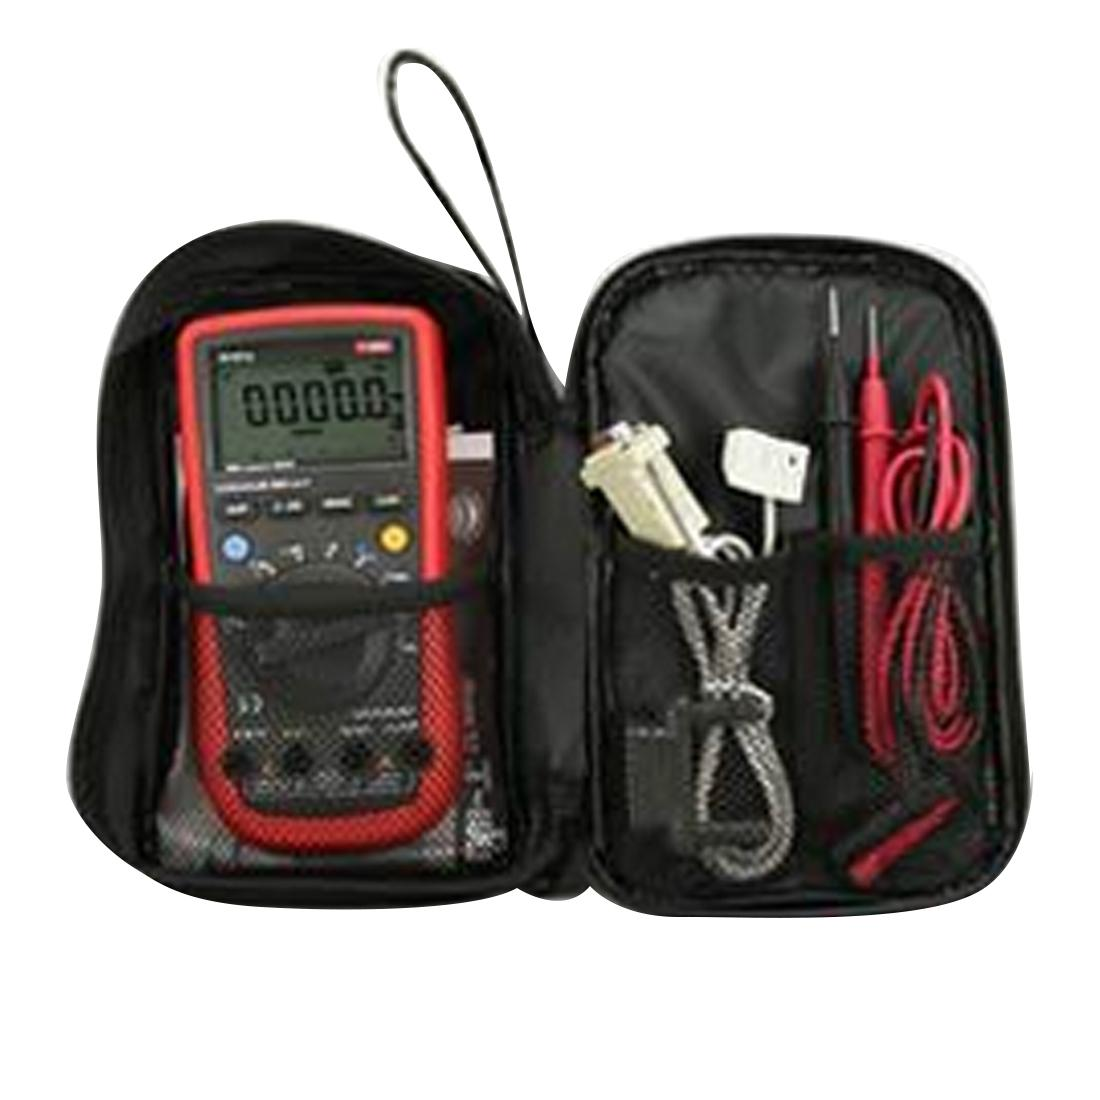 Durable Multimeter Cloth <font><b>Bag</b></font> <font><b>Bag</b></font> Multimeter Black <font><b>Bag</b></font> for Series